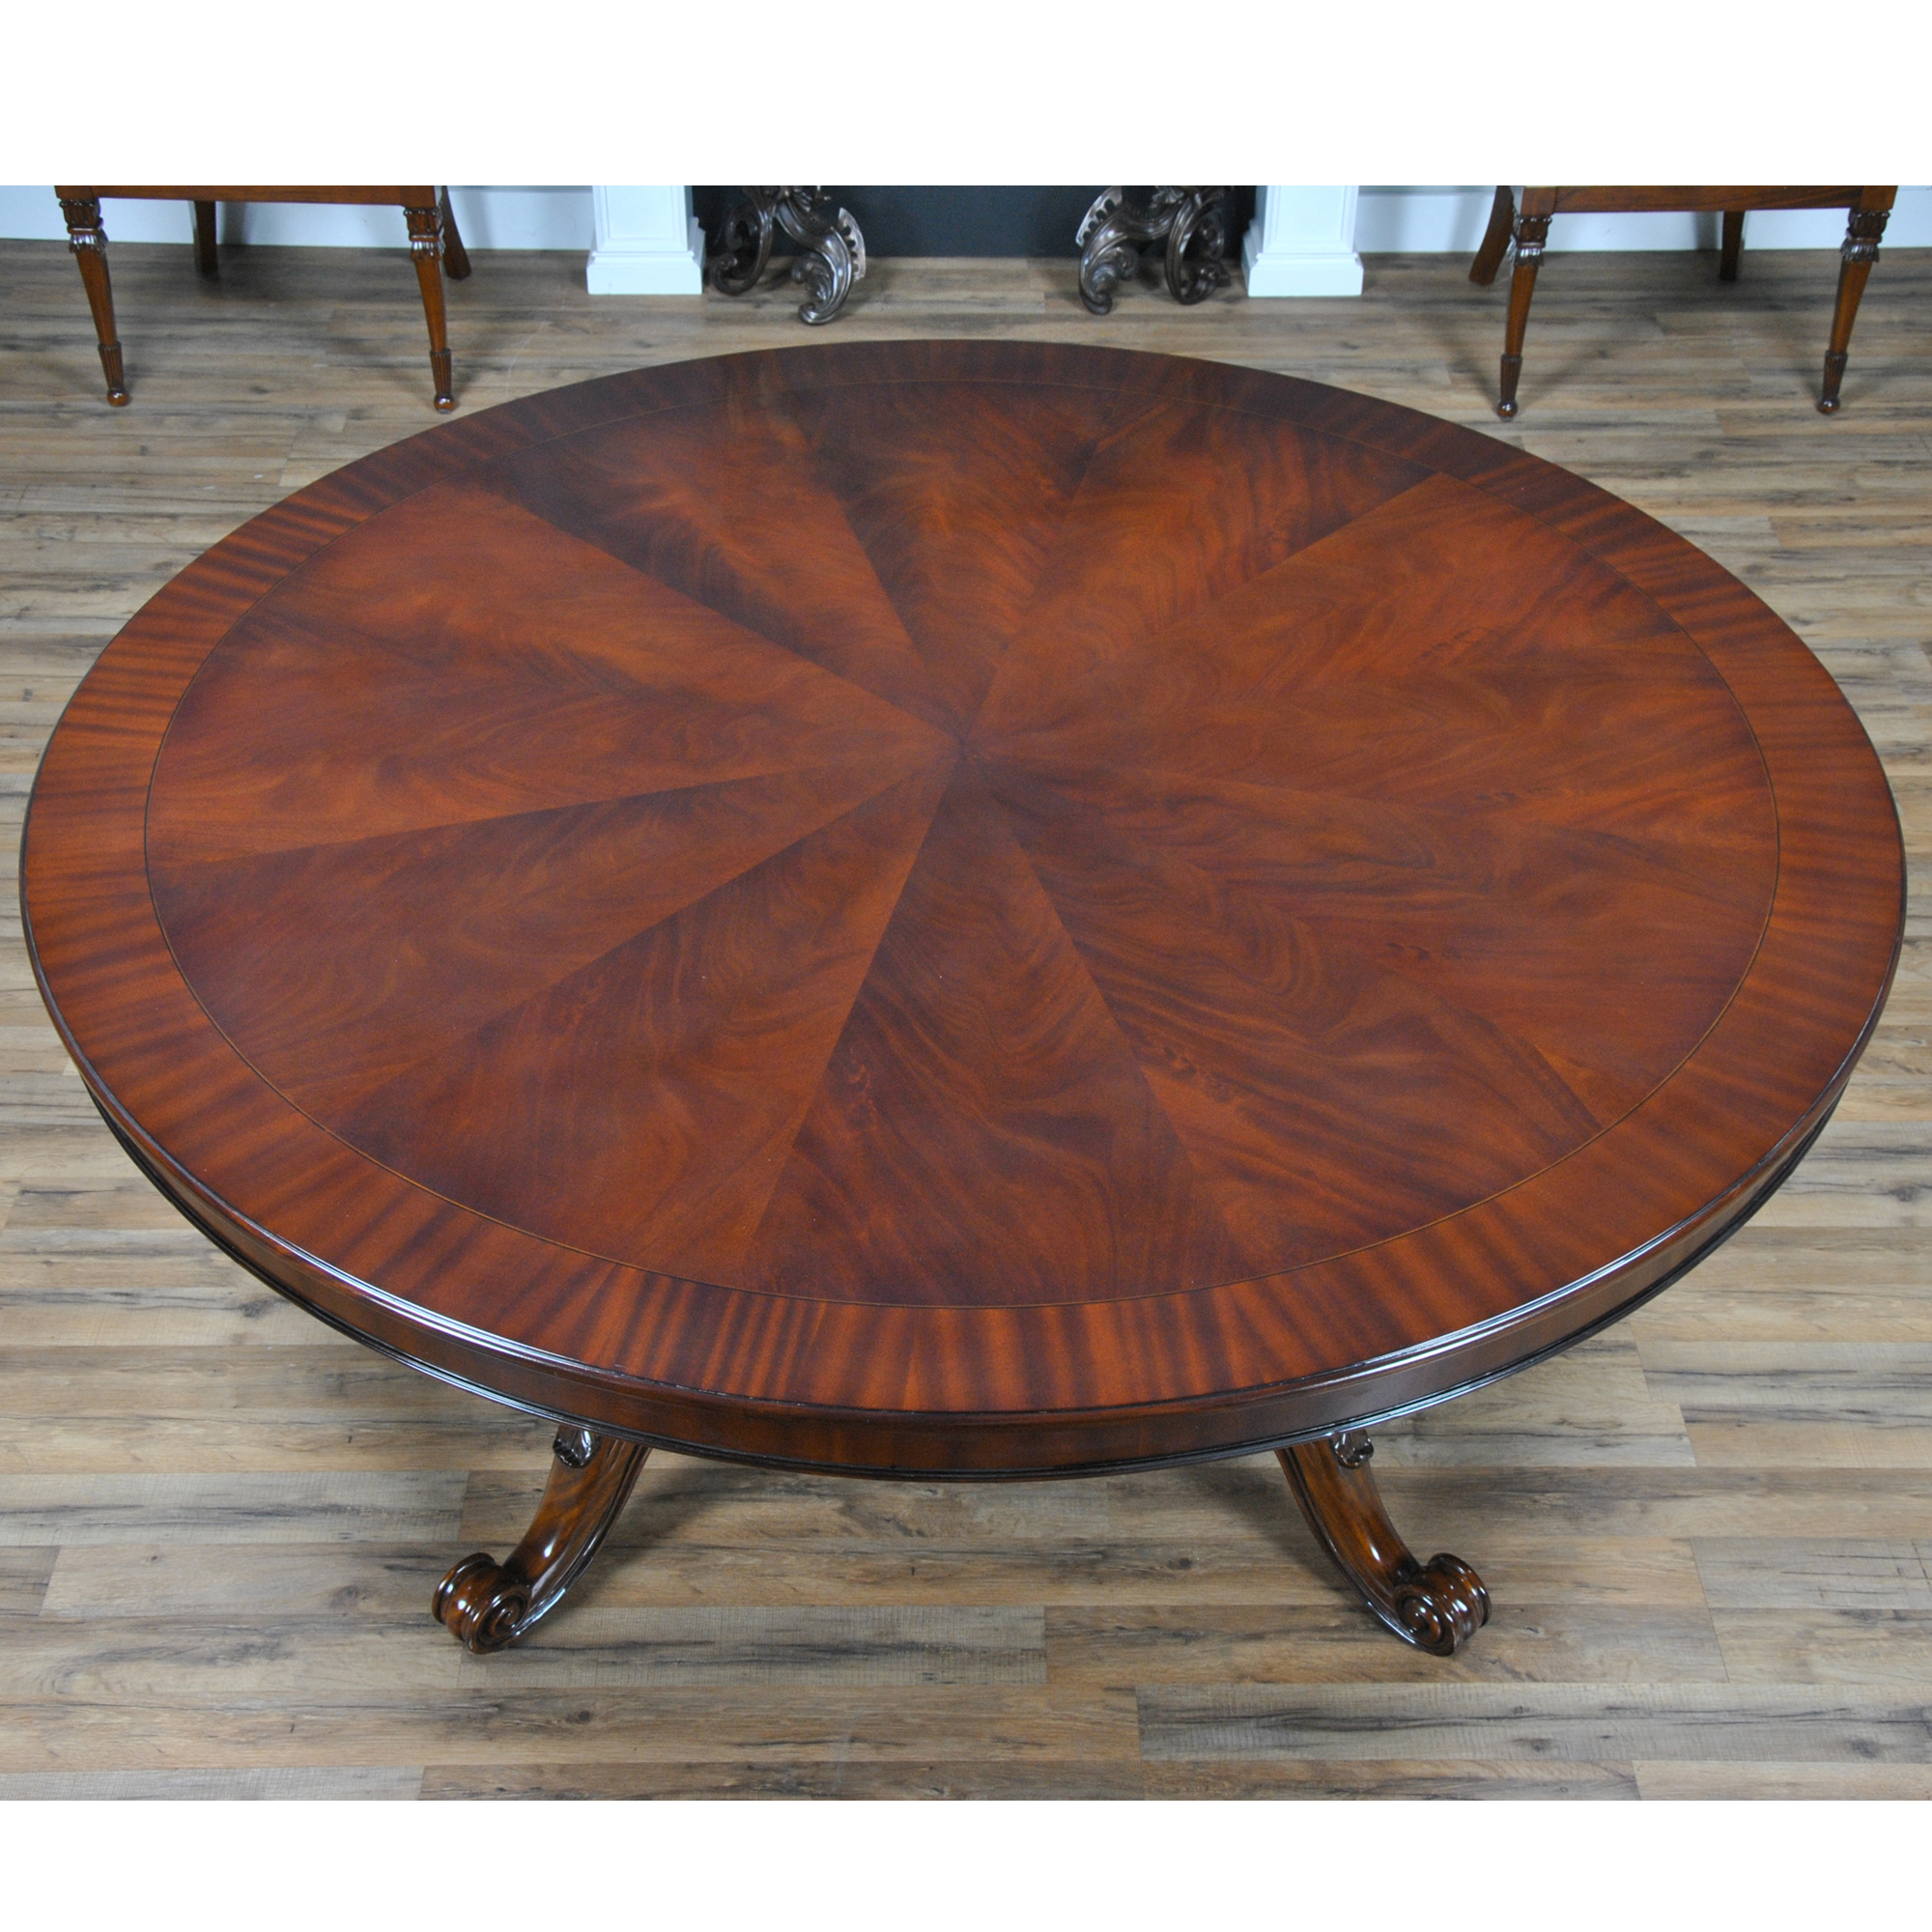 72 Inch Round Table Niagara Furniture Round Mahogany Table